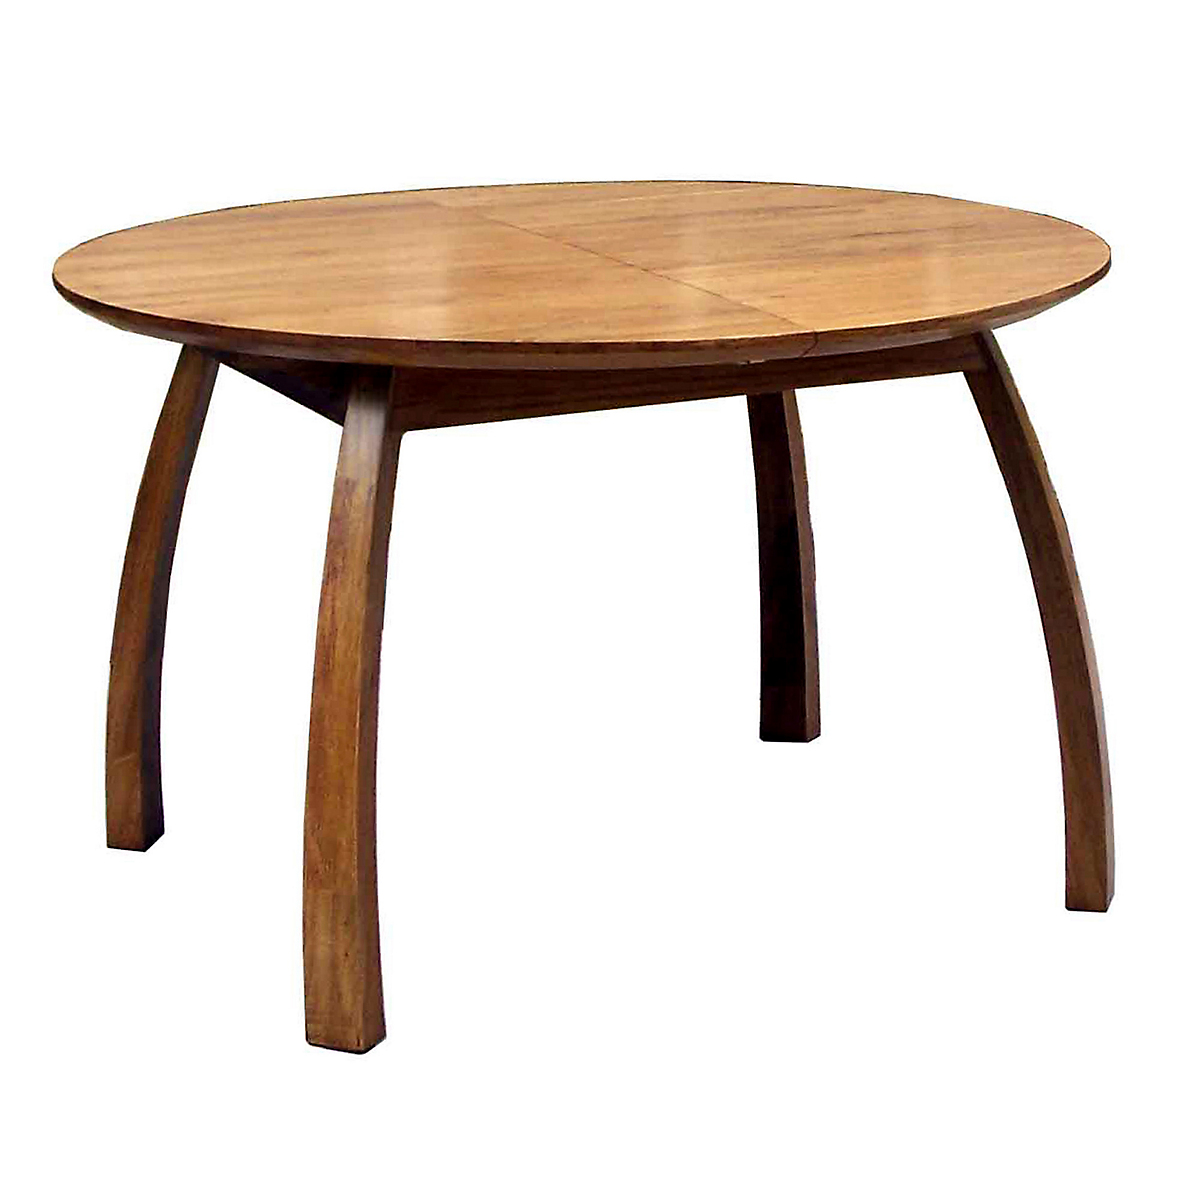 Maria yee ojai round extension dining table gump 39 s - American history x dinner table scene ...